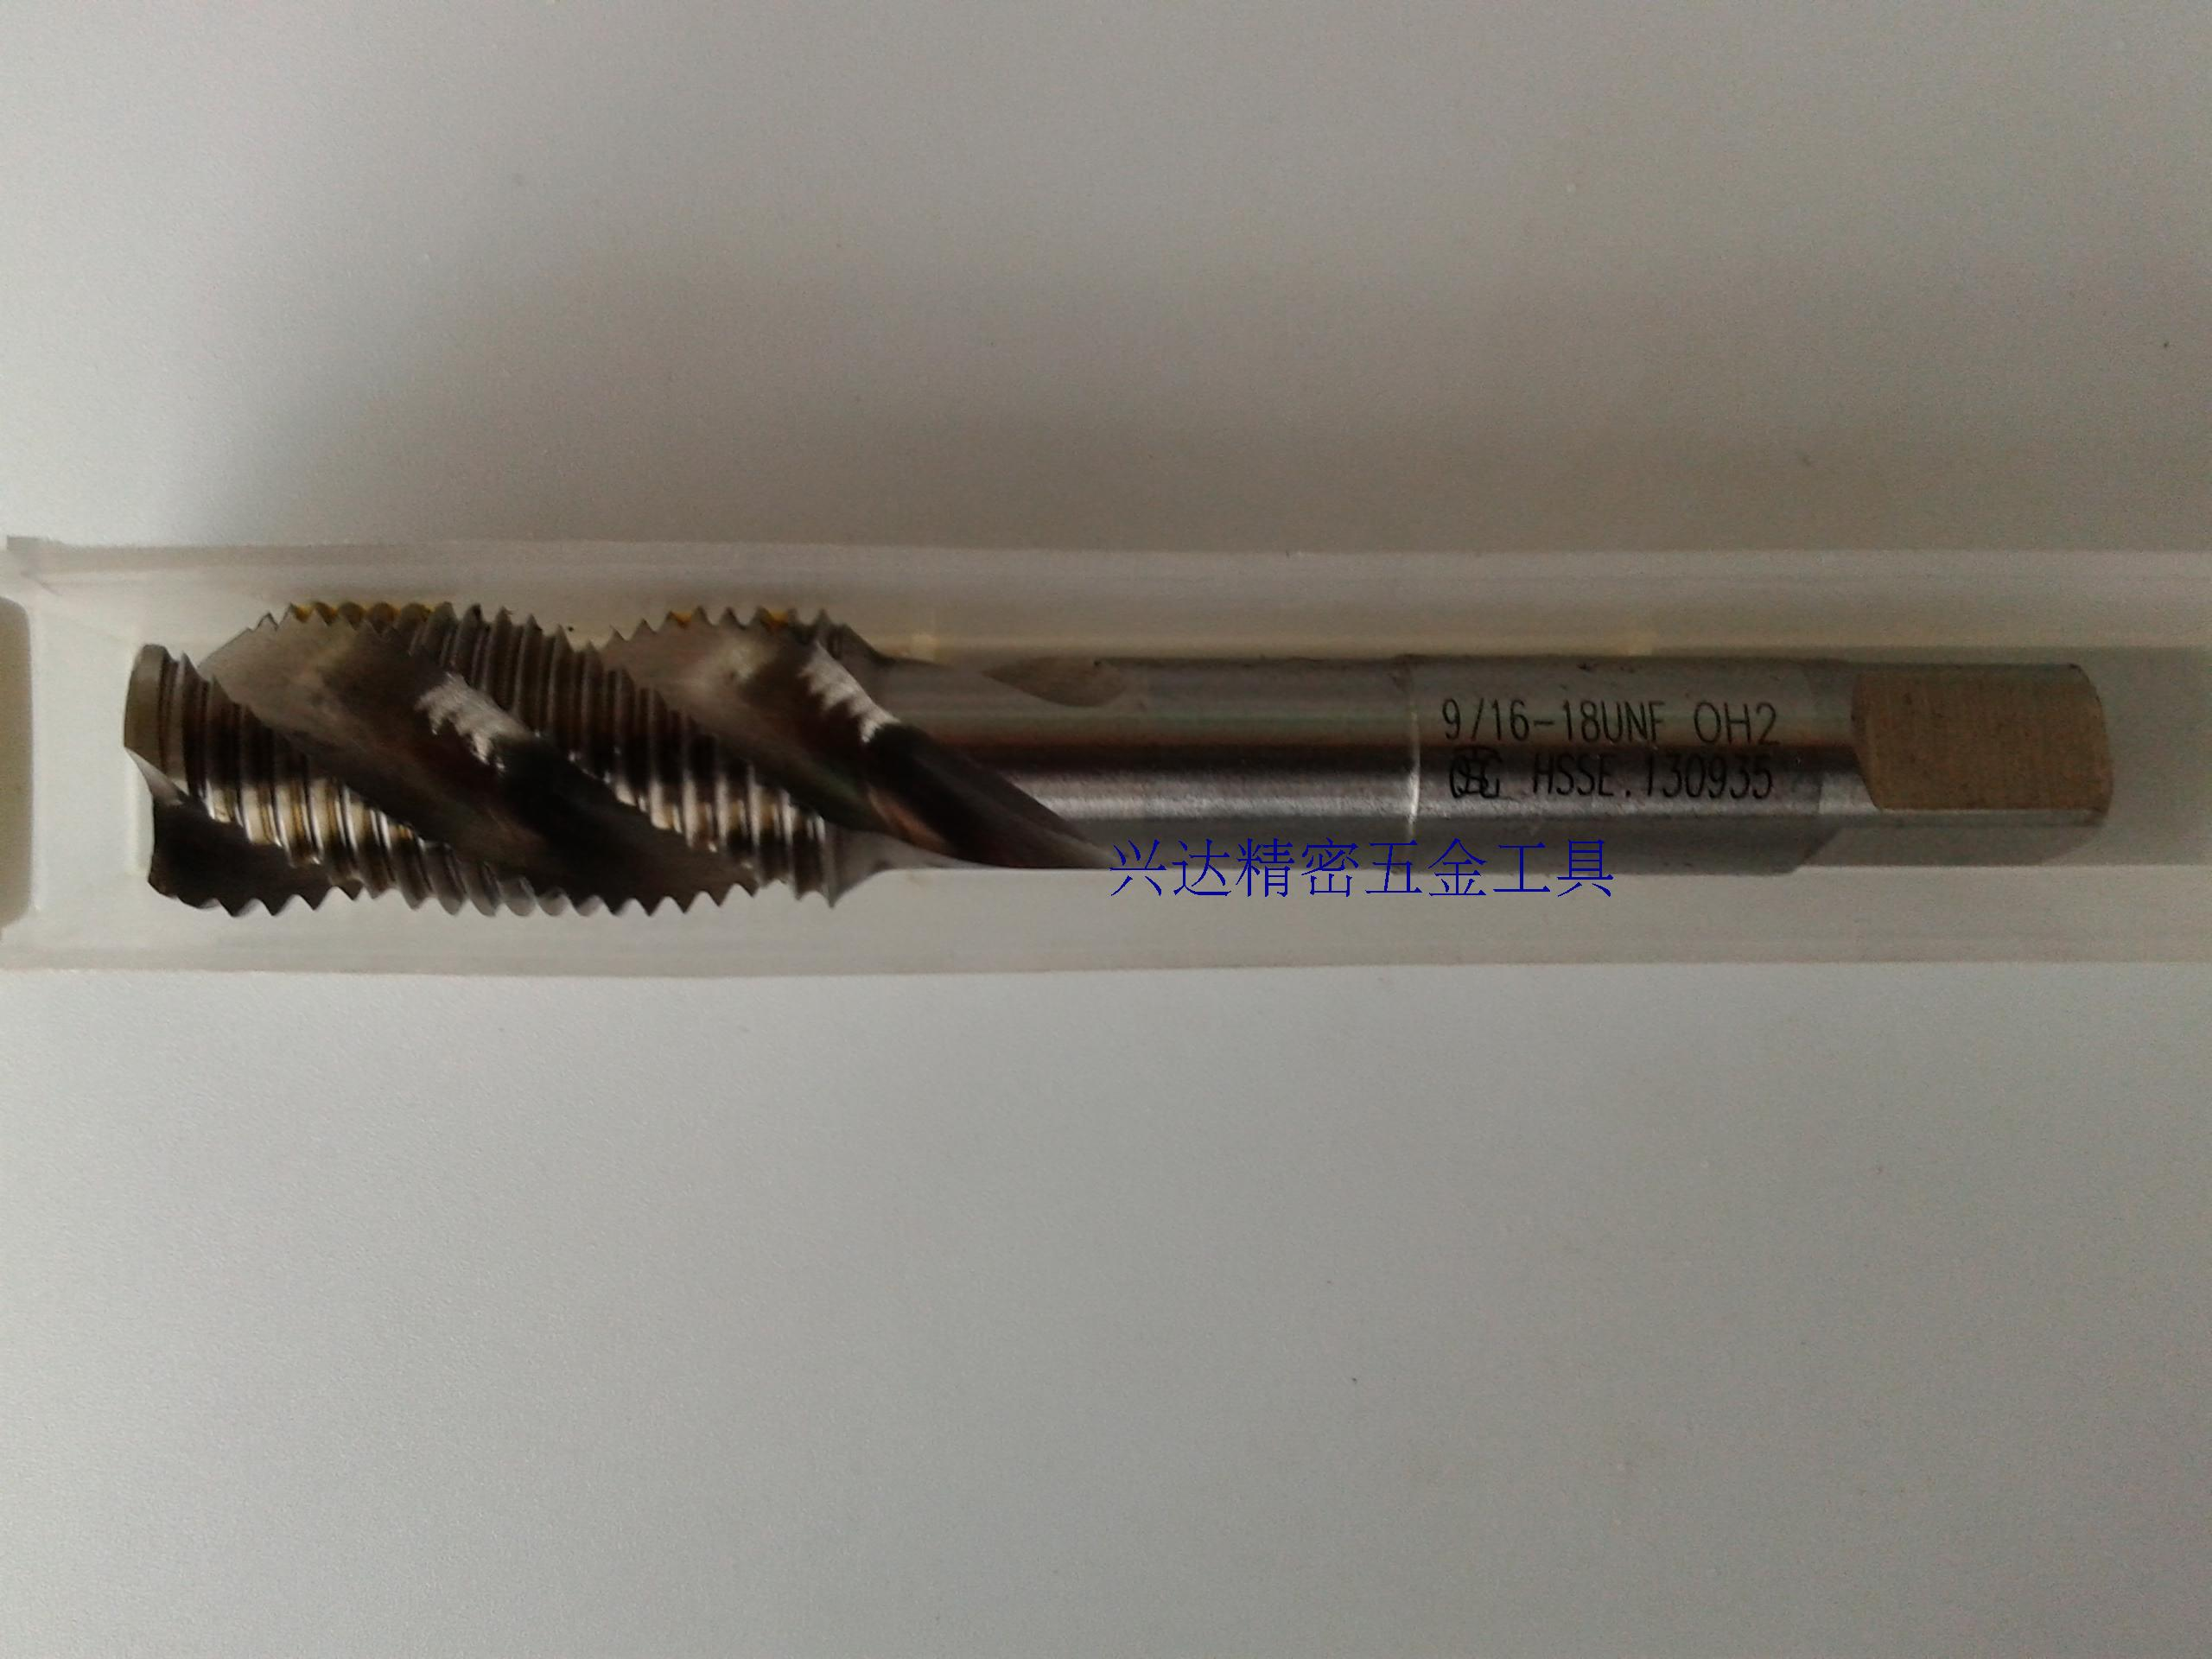 TOSG Dabao screw wire tapping UNC9/16-18 imported machine taps 7/16-143/85/16-18